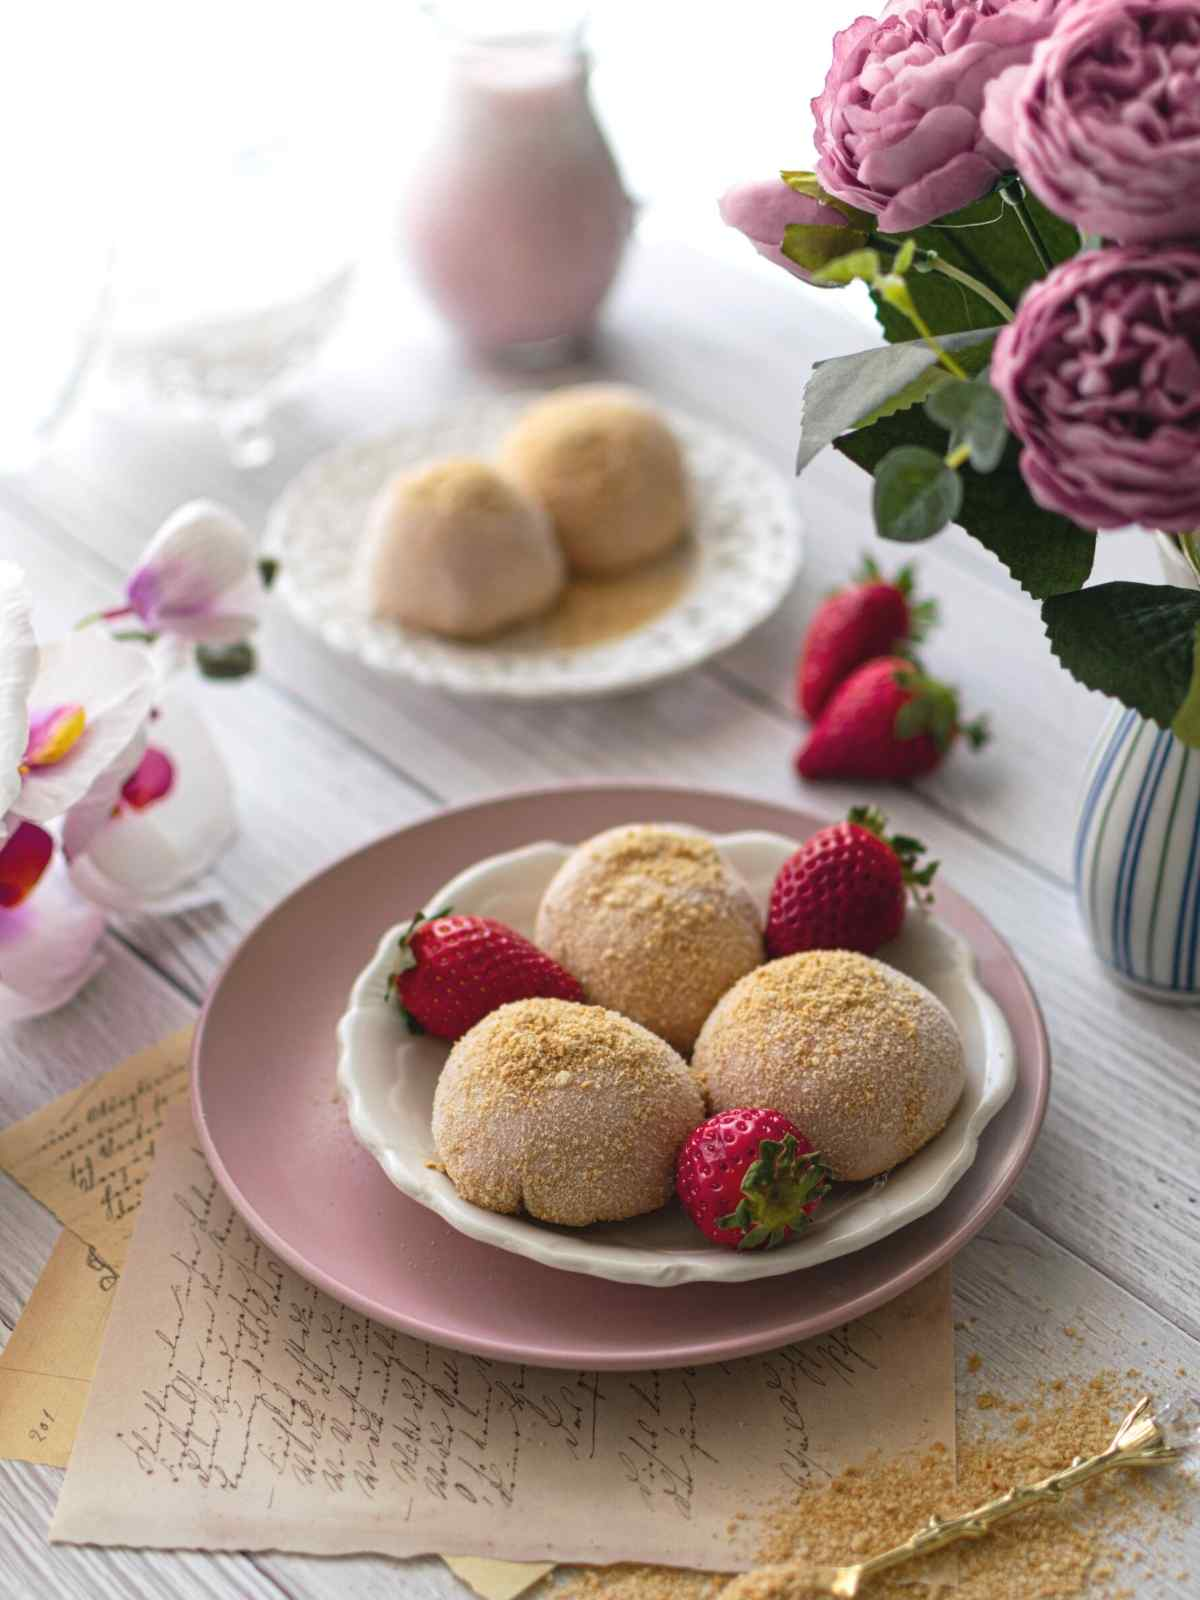 Three mochi on a plate with strawberries and mochi in the background